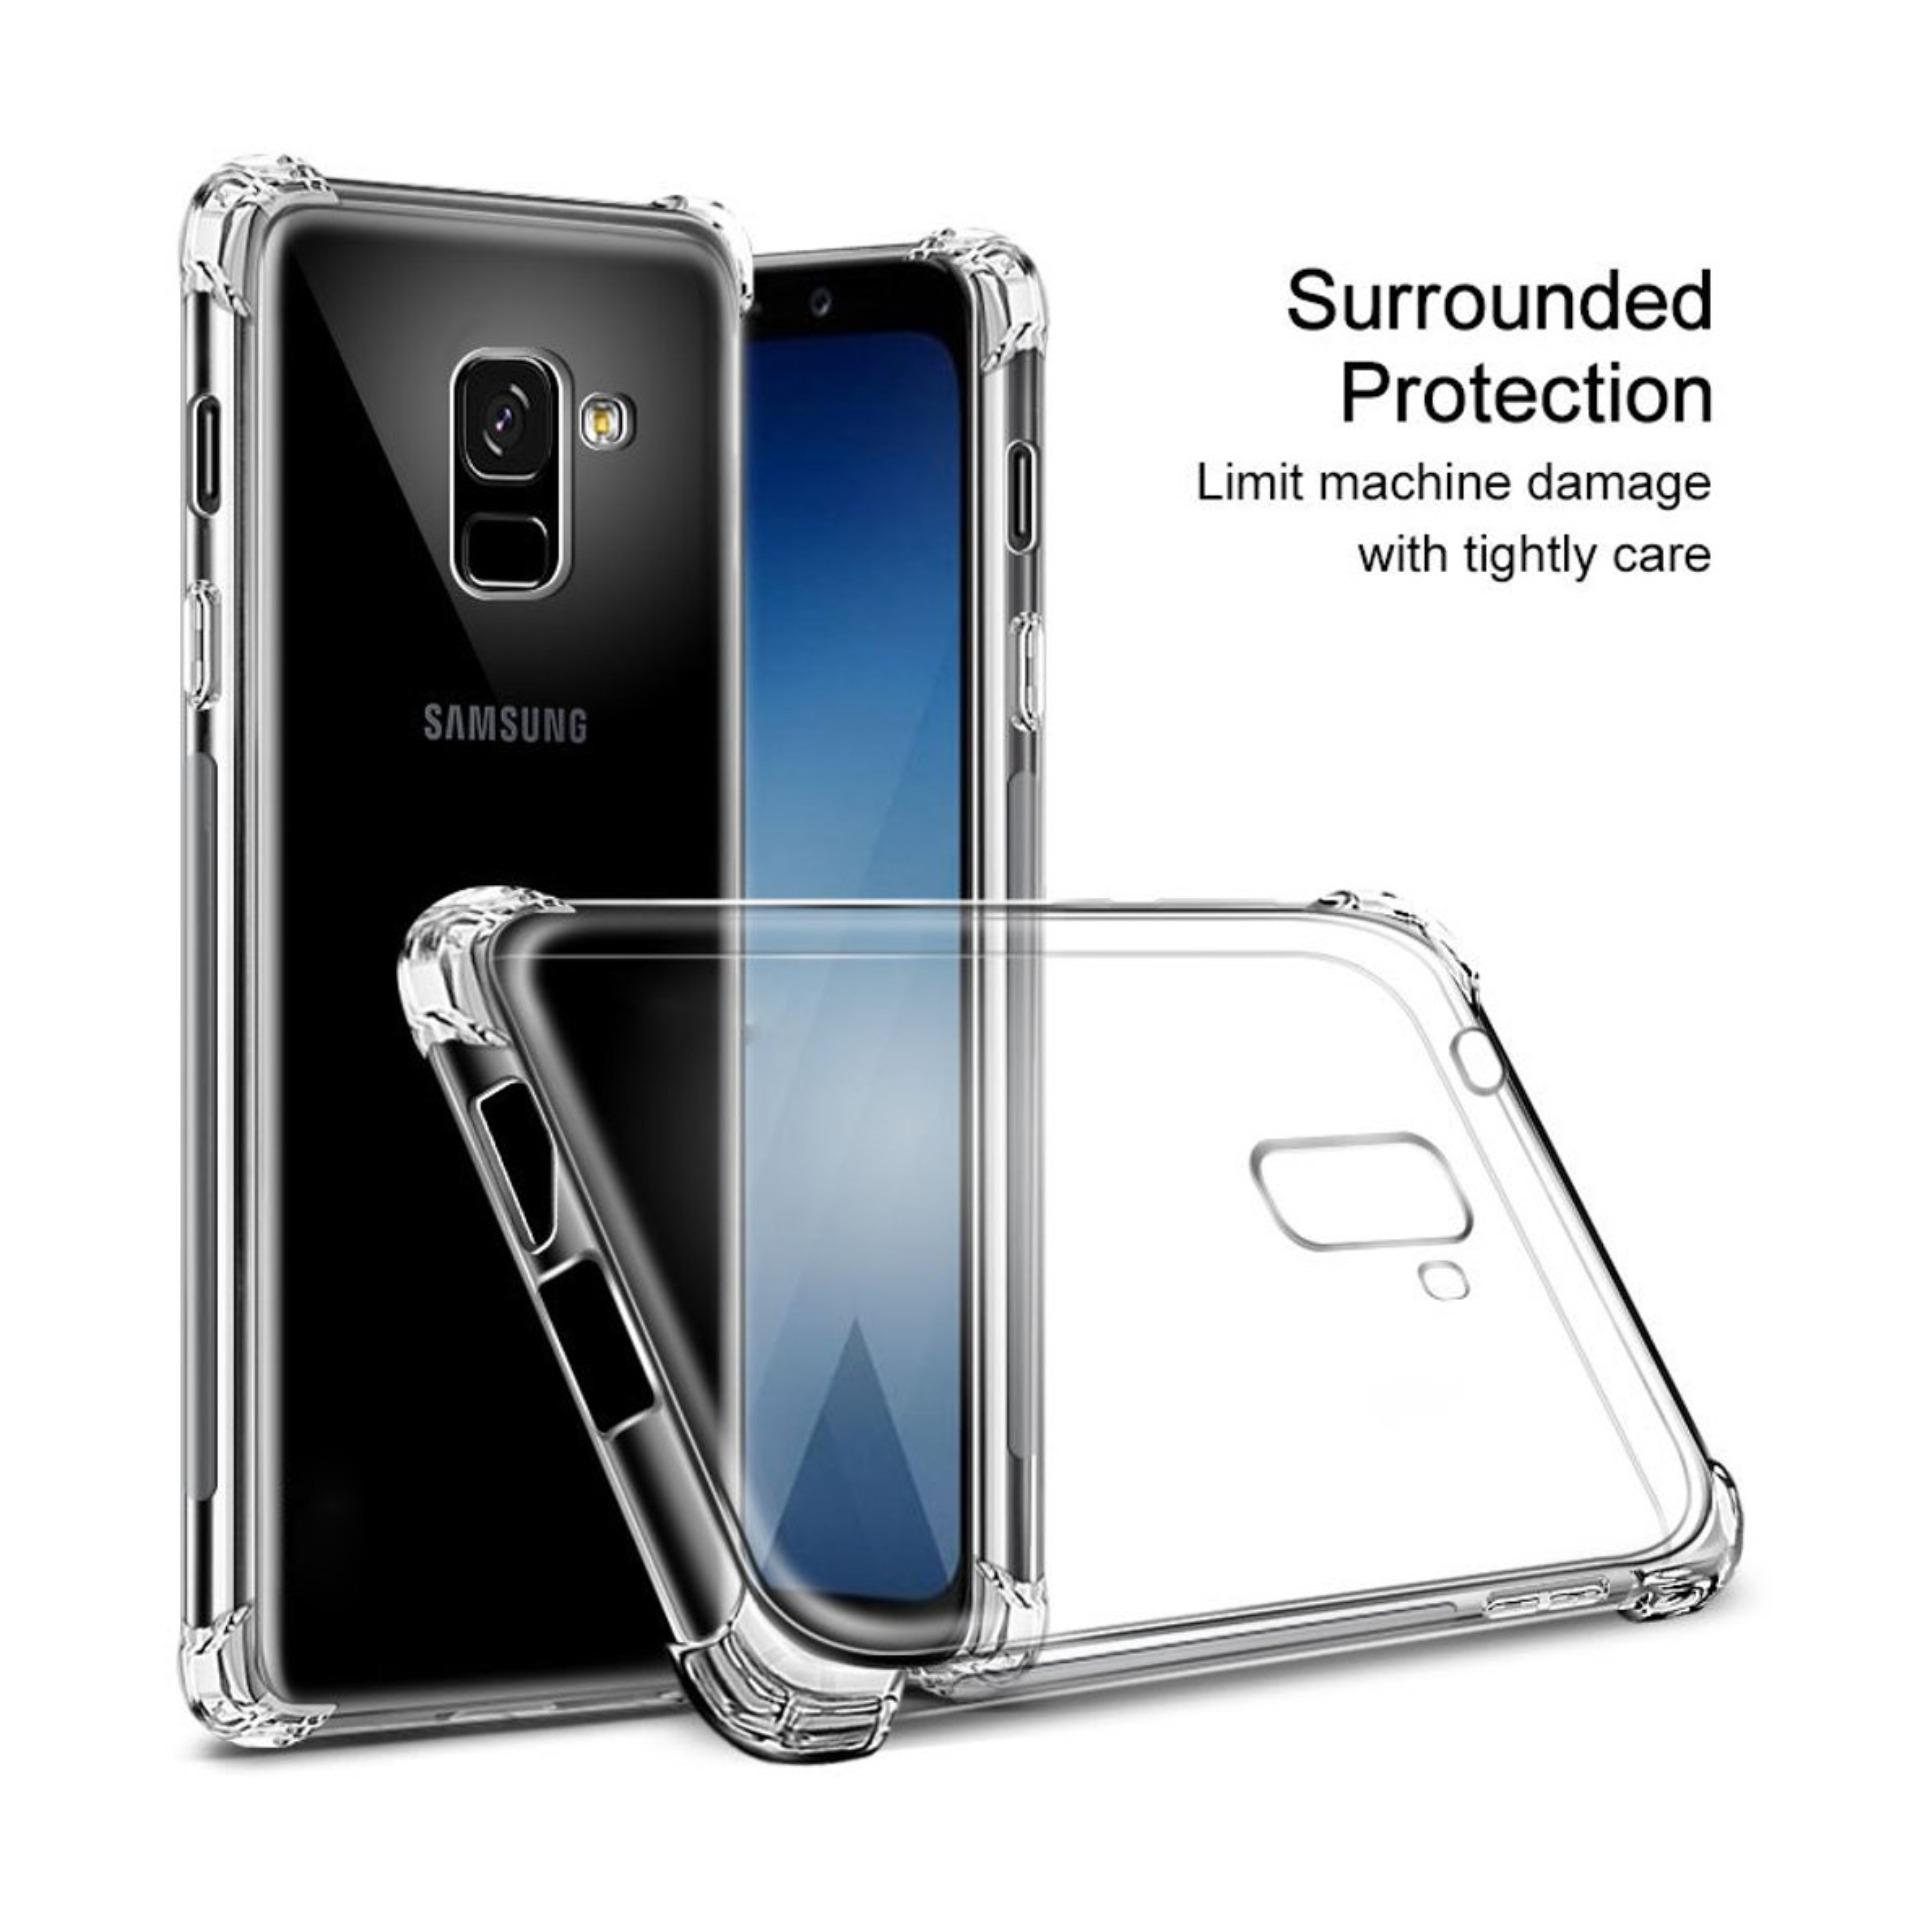 Harga Jual Tempered Glass Warna Samsung Galaxy A8 Plus 2018 Anti Asus Zenfone Max Pro M1 Zb602kl Color 25d Full Cover Softcase Case Crack Bening For S9 Kualitas Gred A